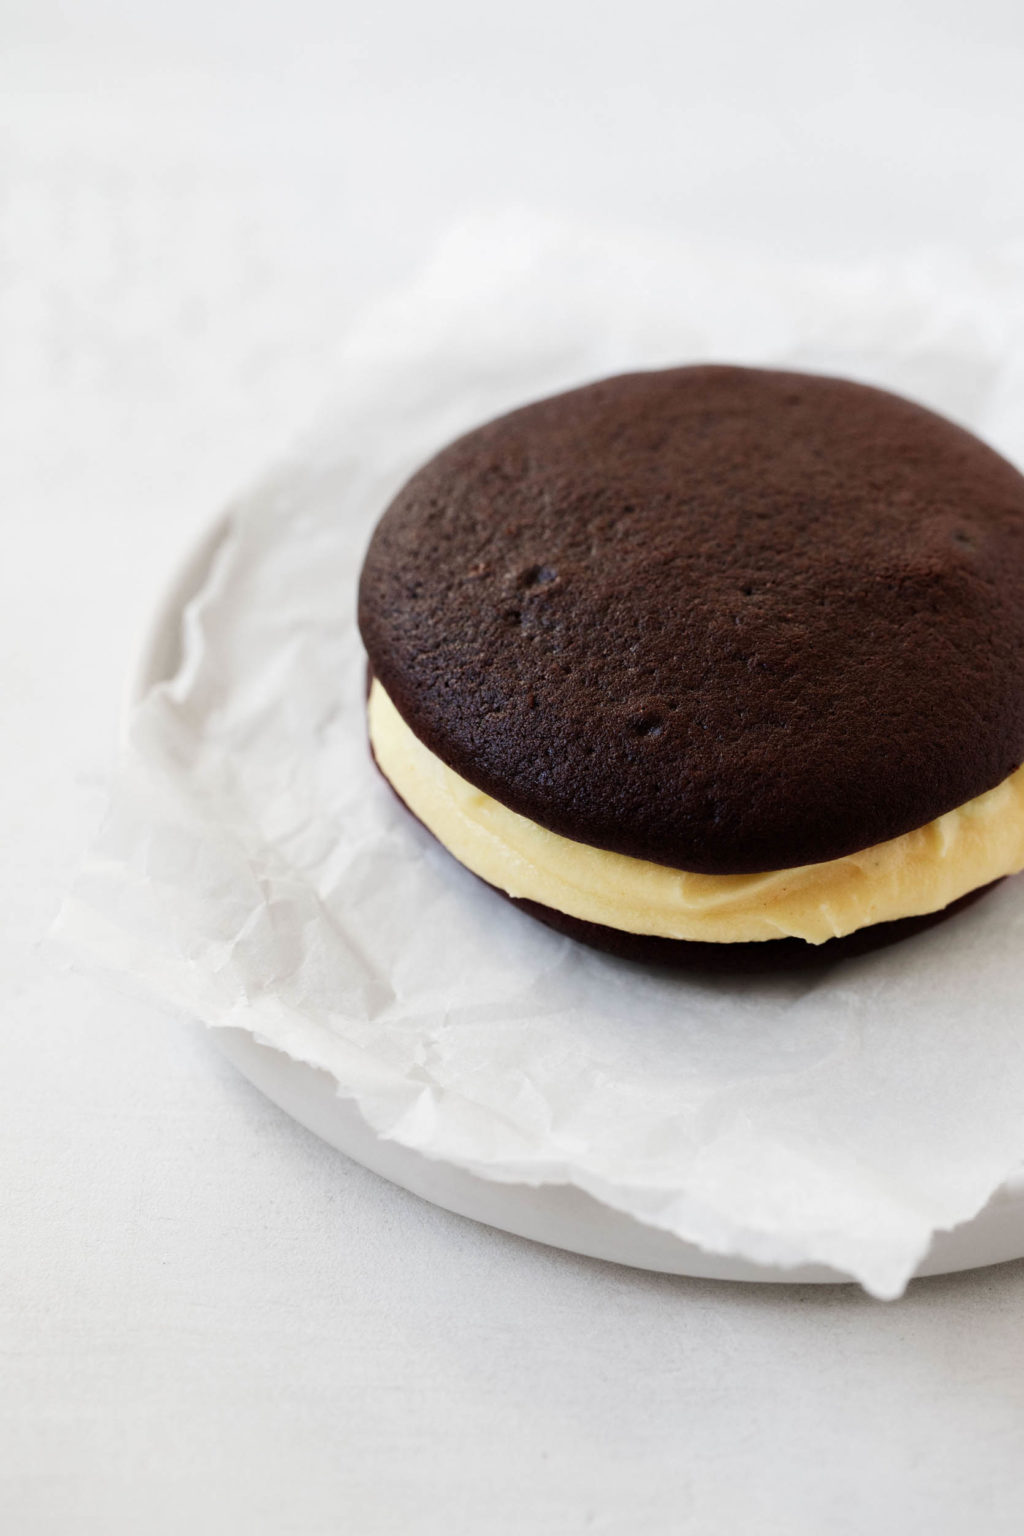 A chocolate and pumpkin vegan whoopie pie, served on a small dessert plate with a crumpled sheet of parchment.